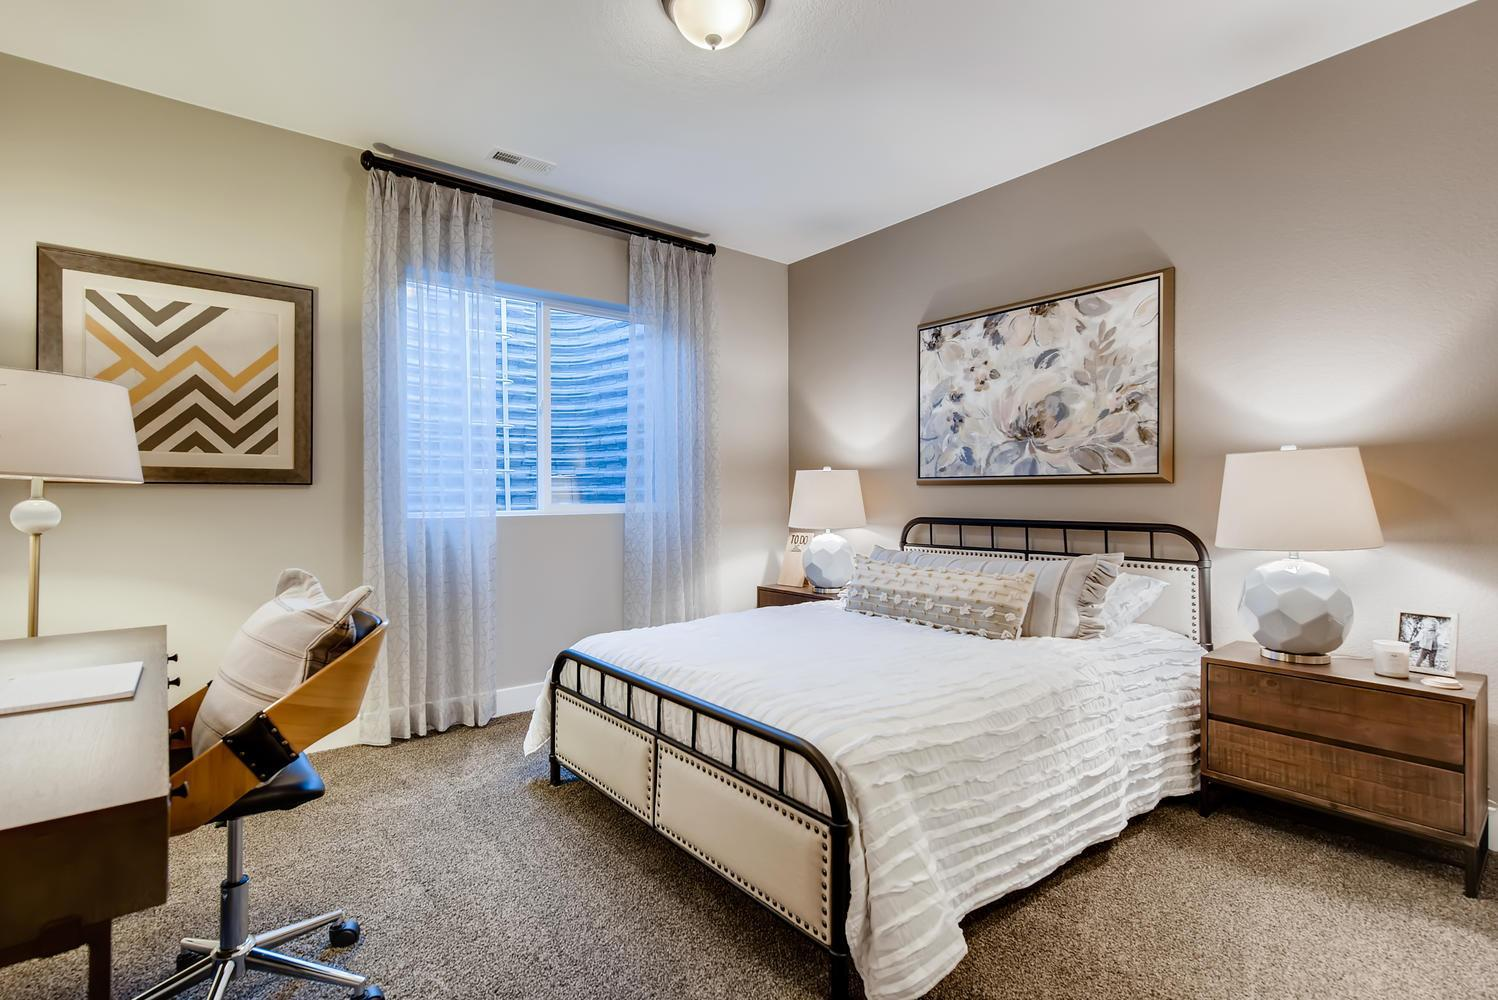 Bedroom featured in the Daylight By Classic Homes in Colorado Springs, CO